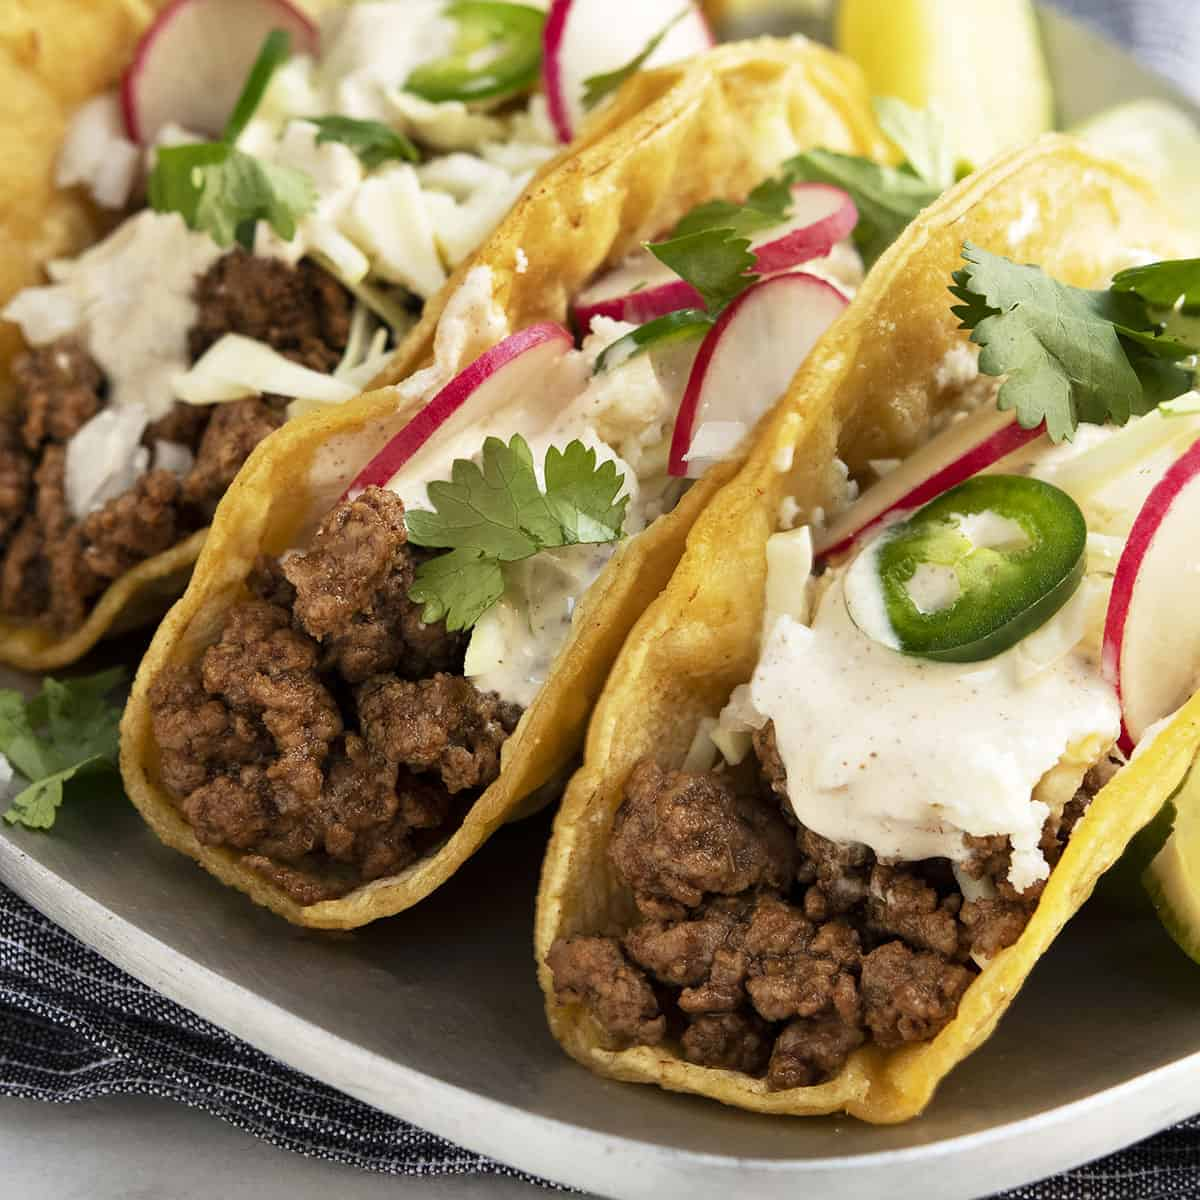 Lamb Tacos served on a stainless steel platter